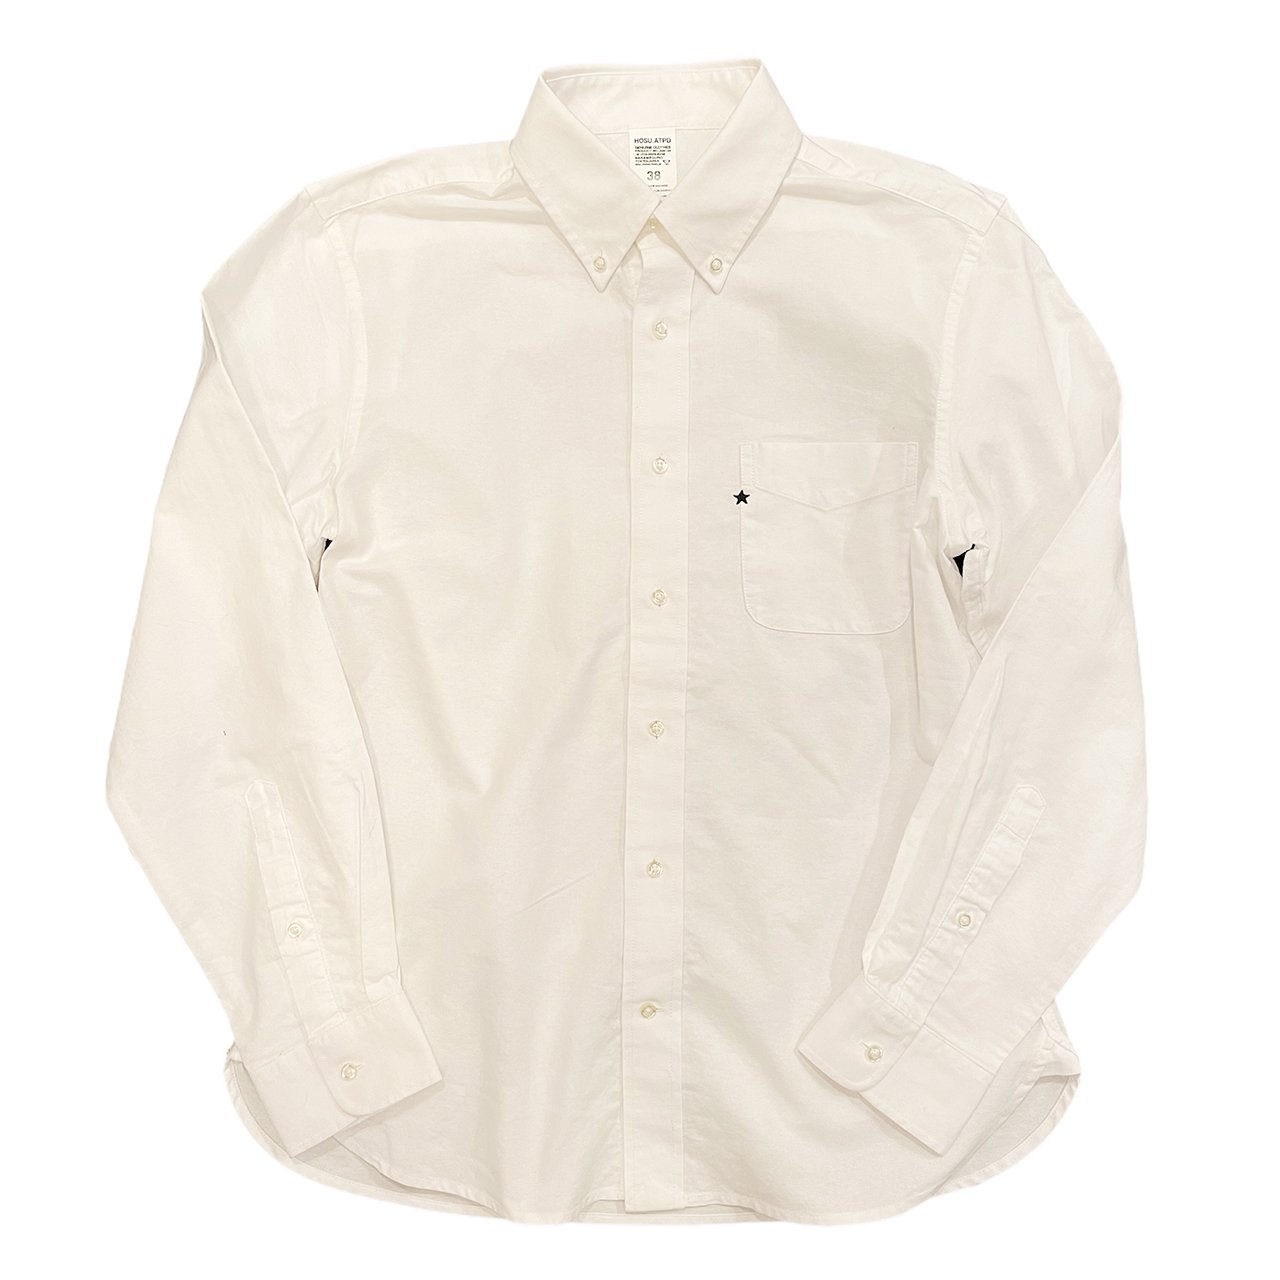 <img class='new_mark_img1' src='//img.shop-pro.jp/img/new/icons1.gif' style='border:none;display:inline;margin:0px;padding:0px;width:auto;' />HOSU ONE STAR EMBROIDERY OXFORD SHIRT/WHITE,BLUE